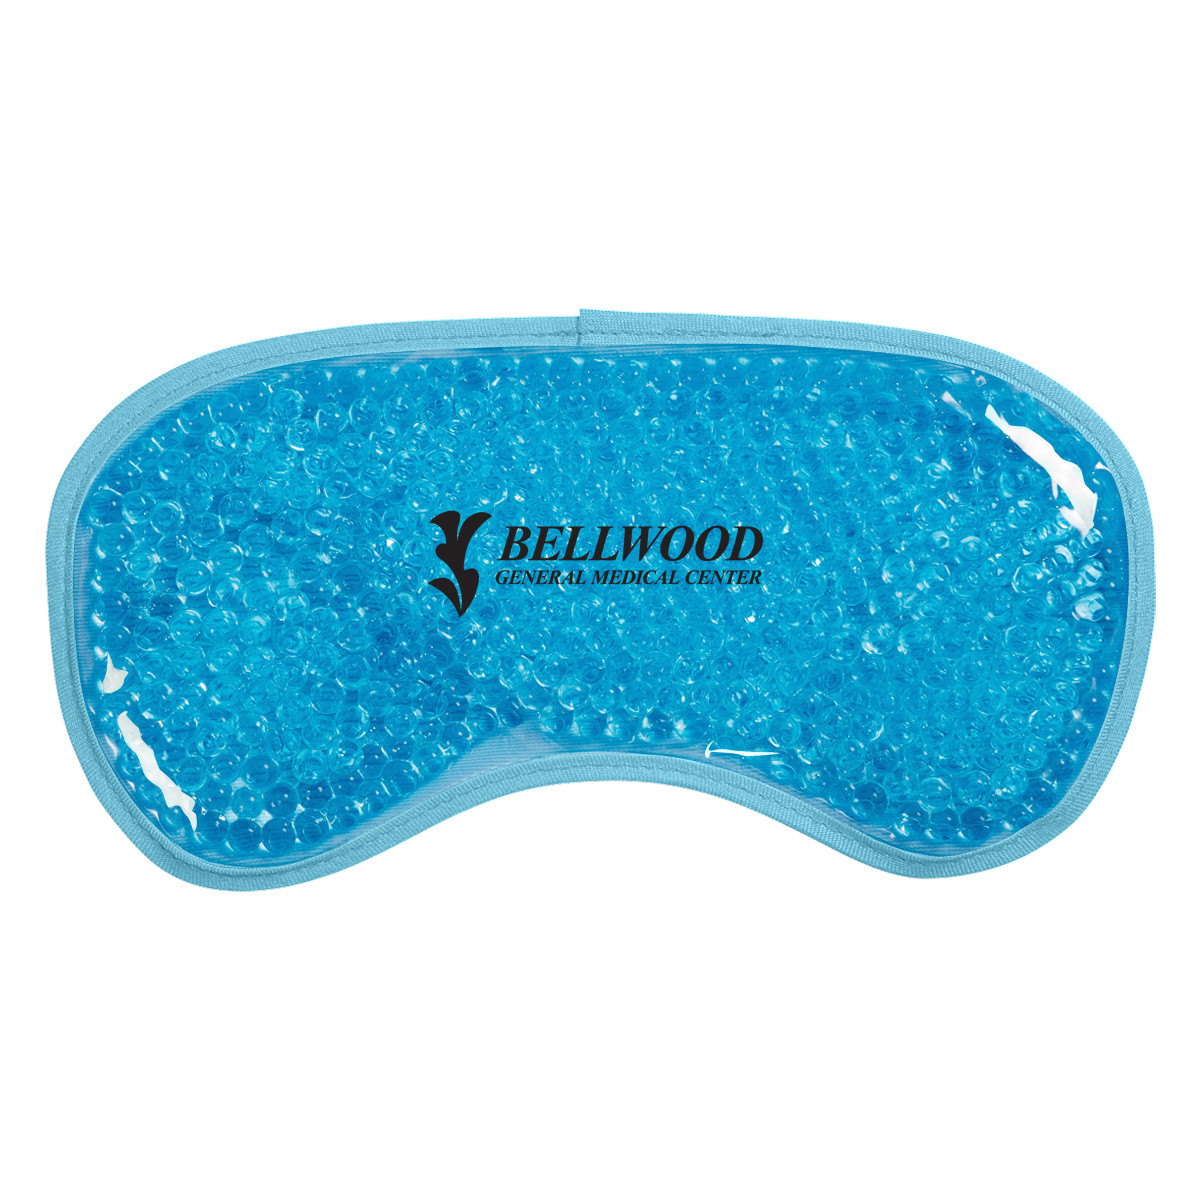 Plush Gel Beads Hot/Cold Eye Mask